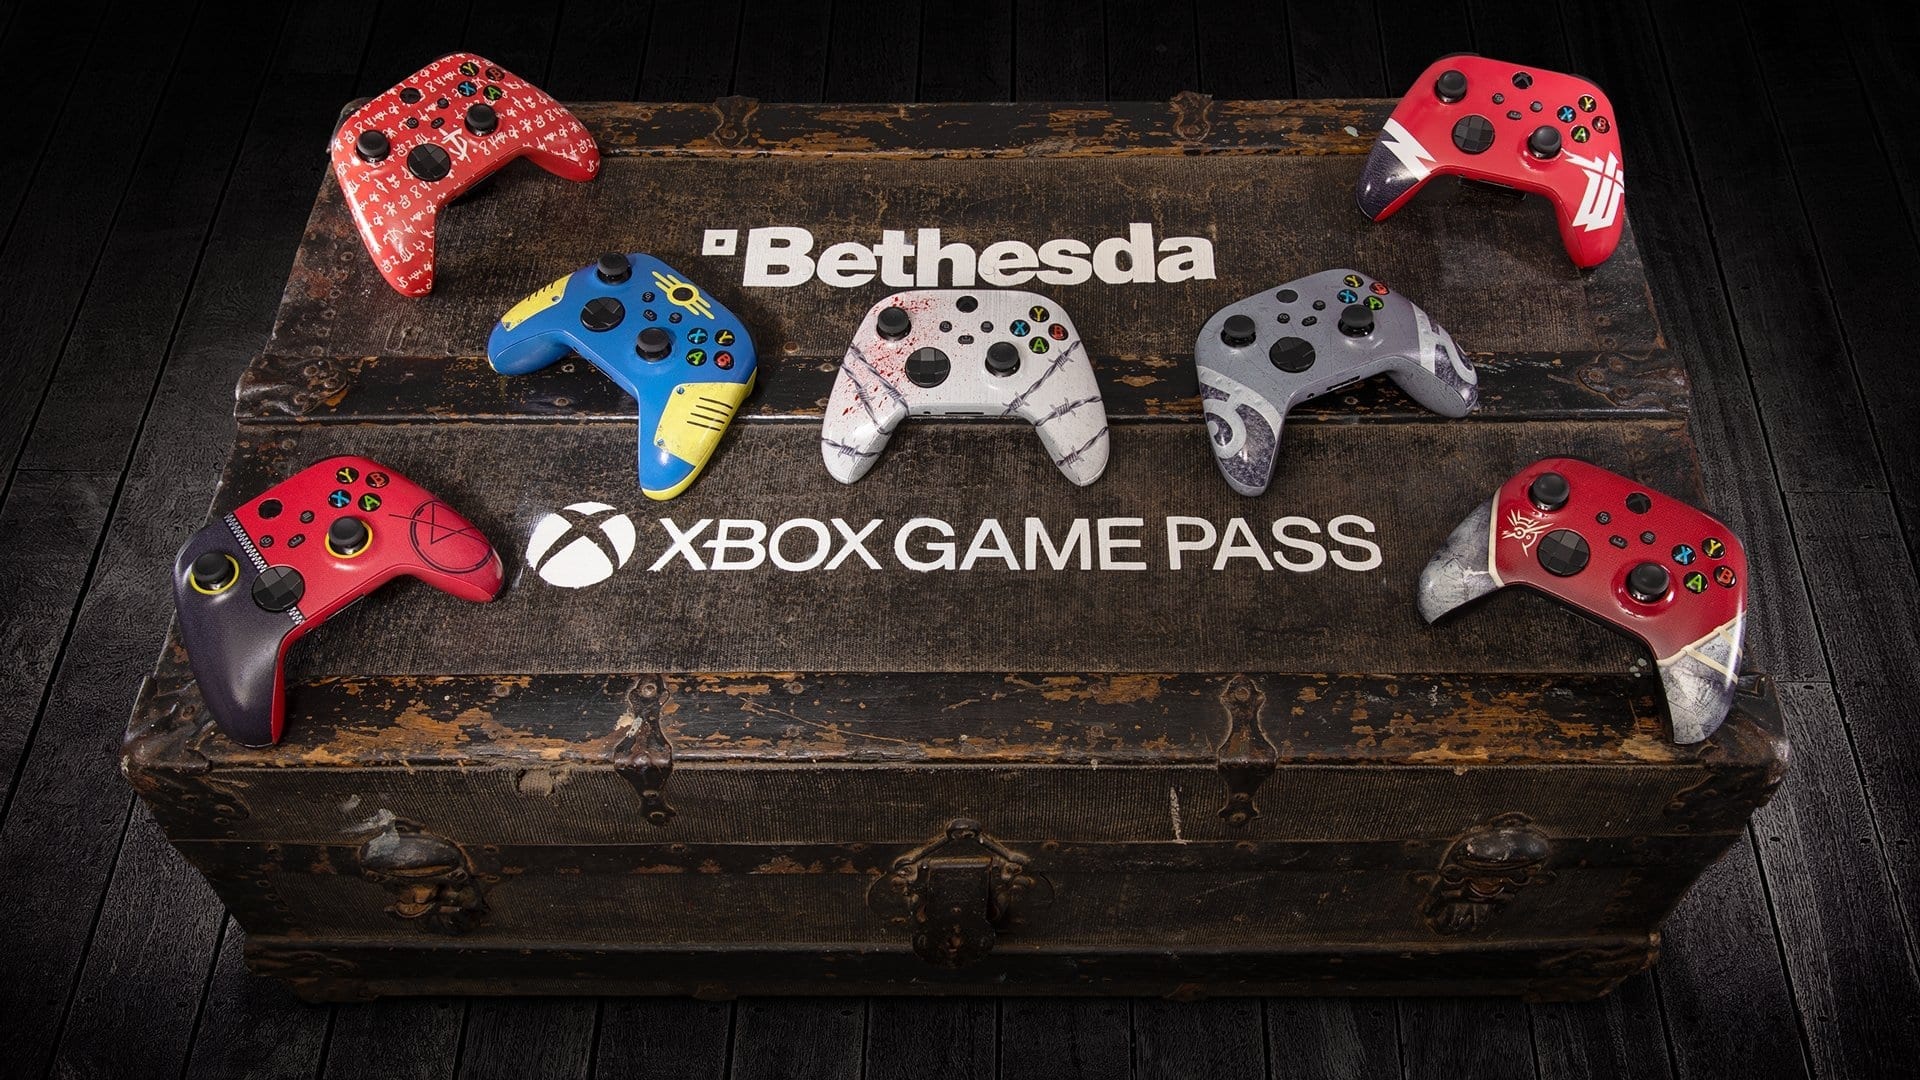 Xbox Is Giving Away Incredible Bethesda-Themed Controllers